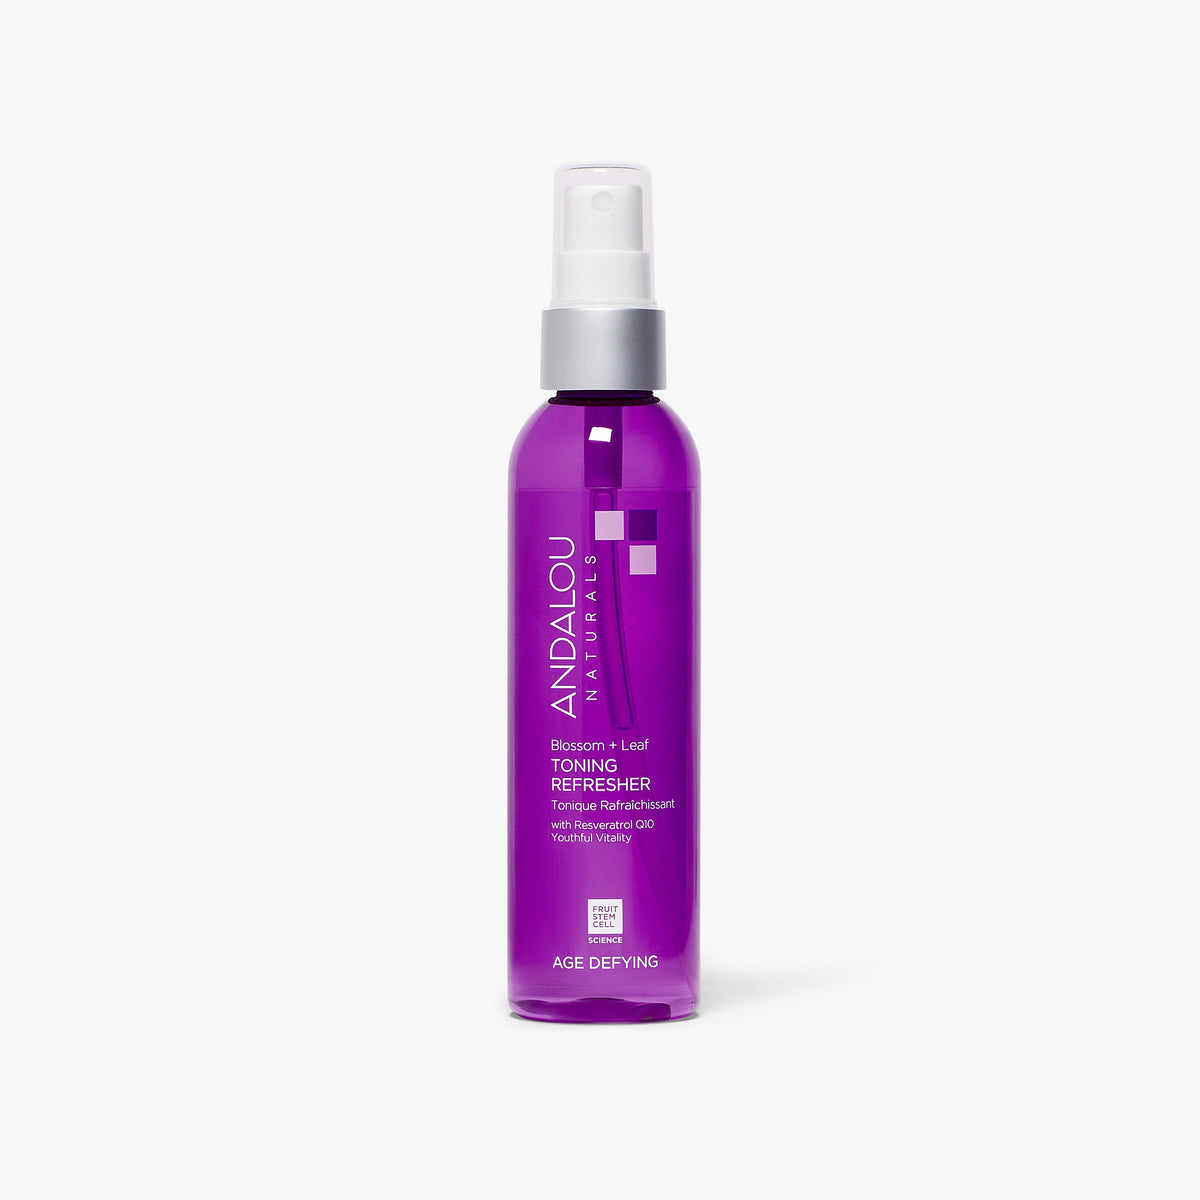 Andalou Naturals Age Defying Blossom + Leaf Toning Refresher bottle